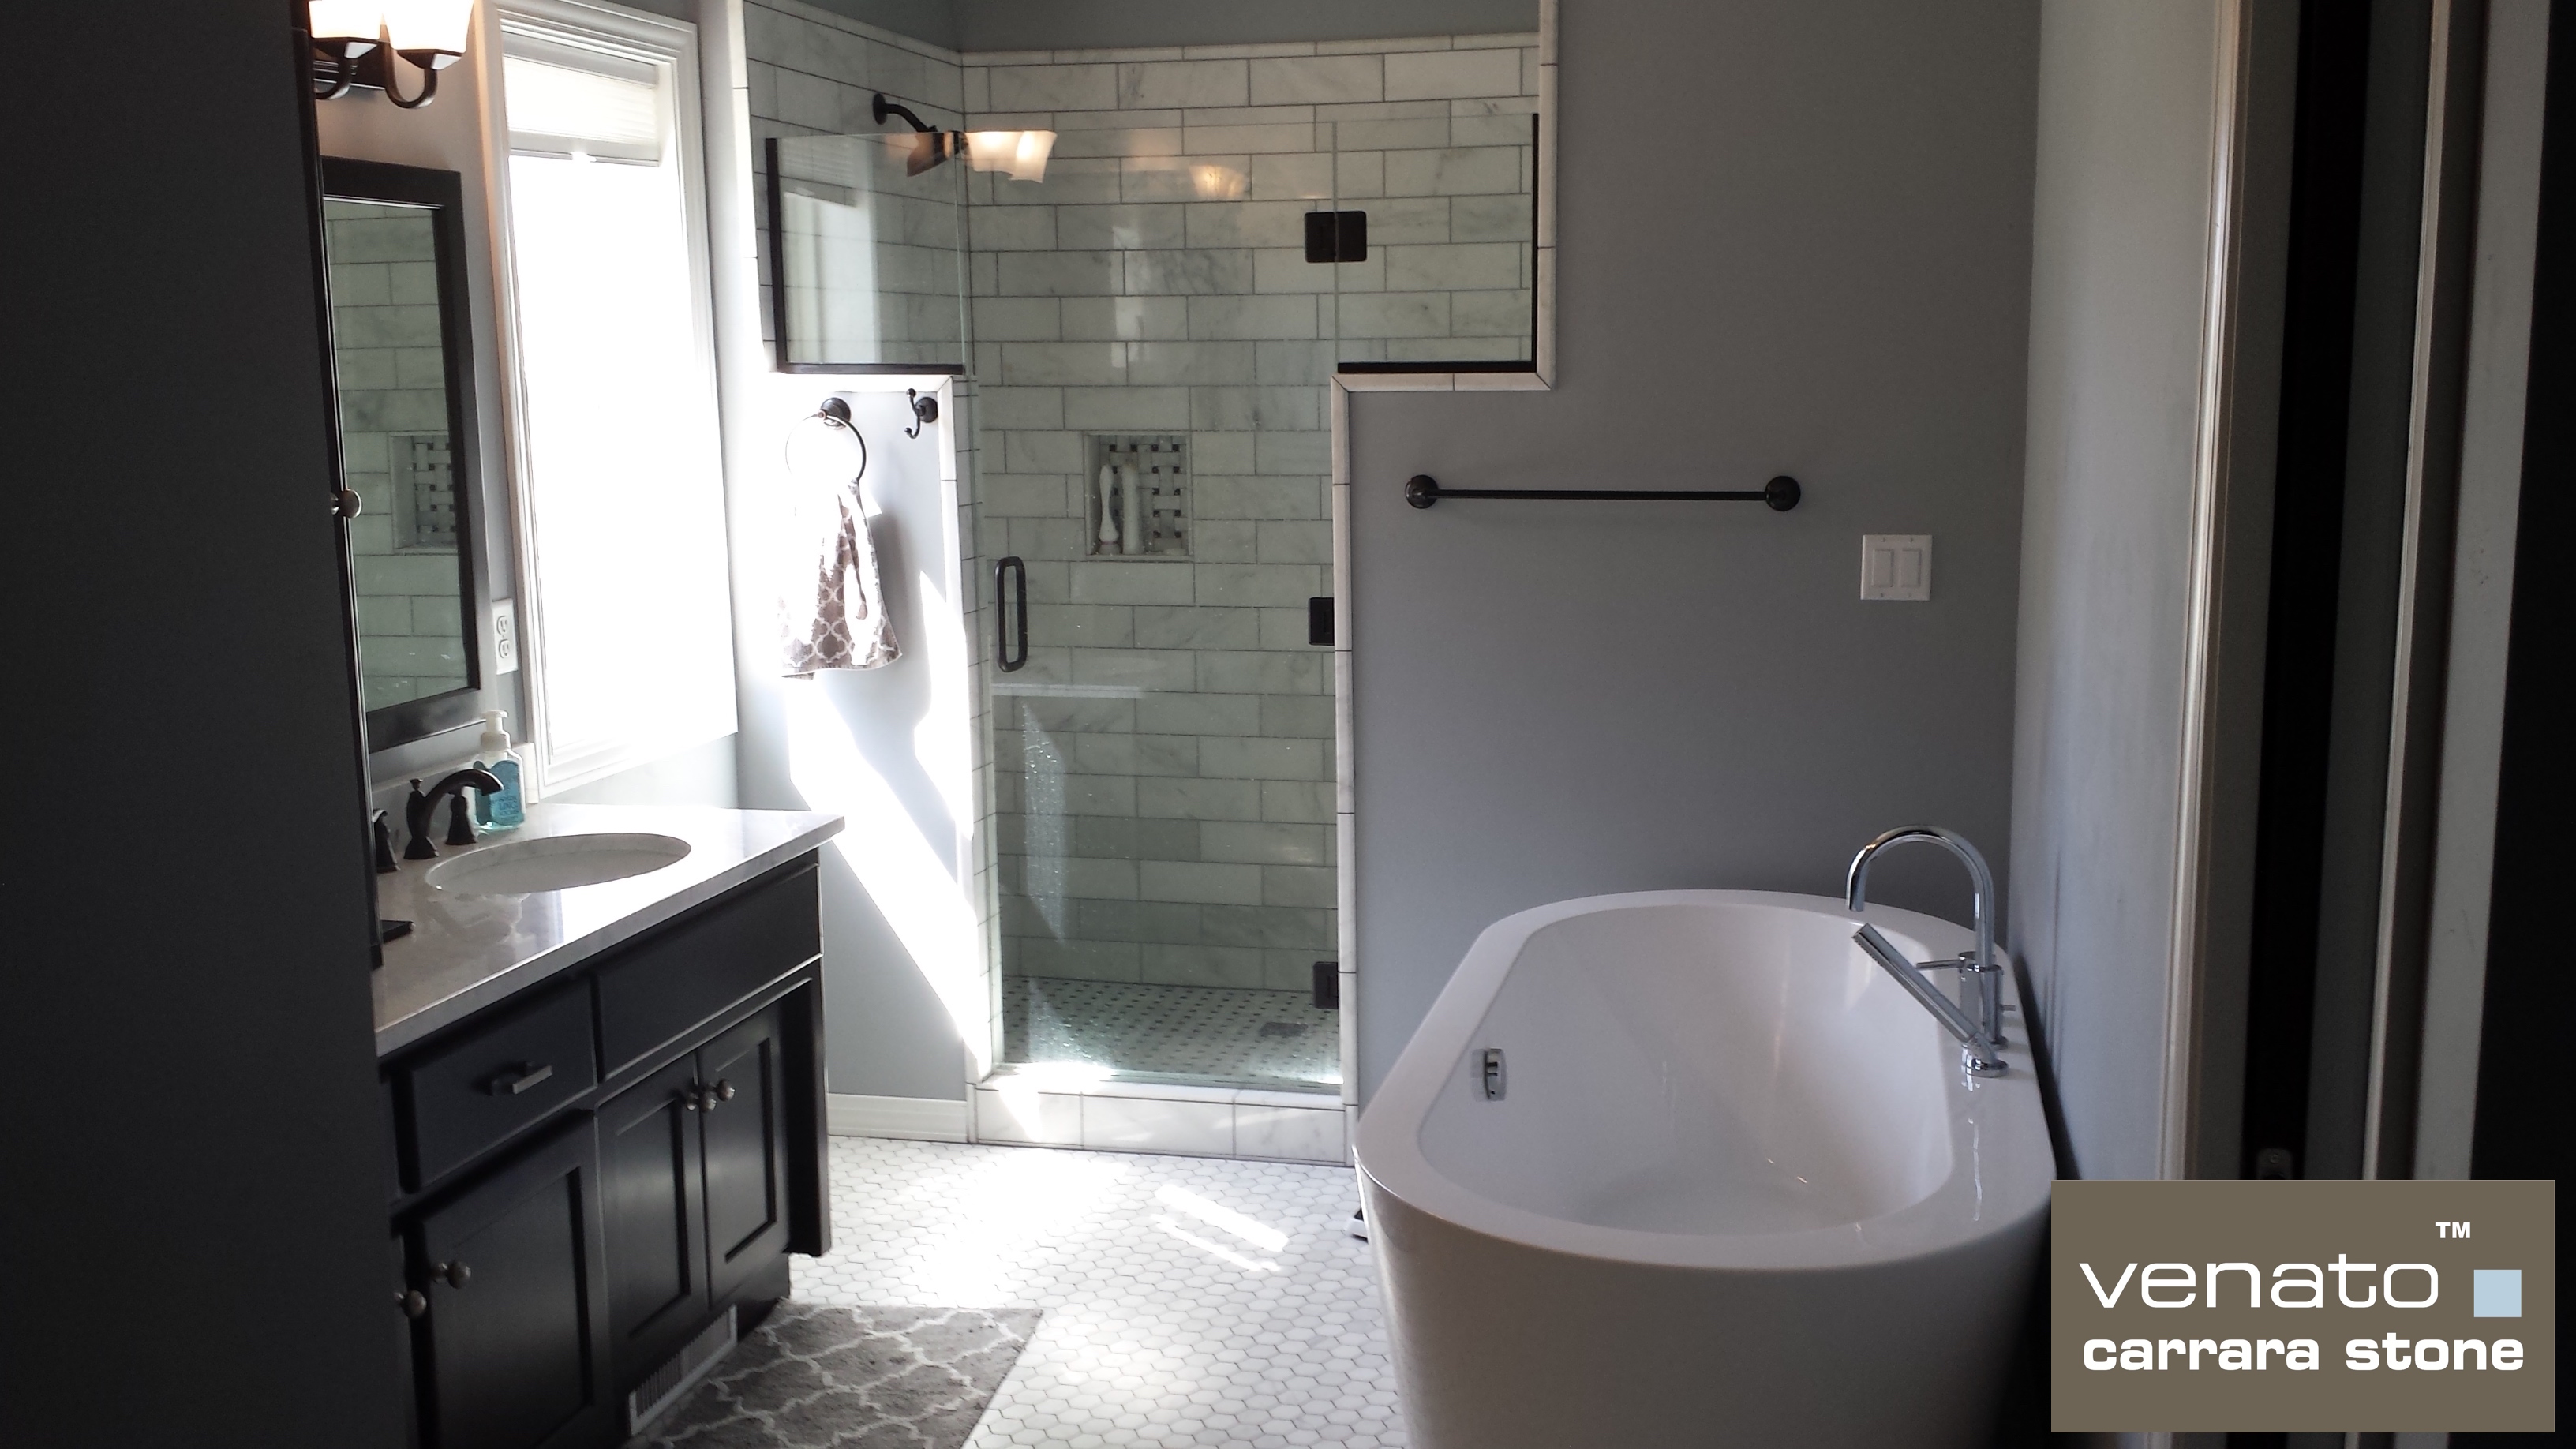 A Carrara Venato Bathroom The Builder Depot Blog